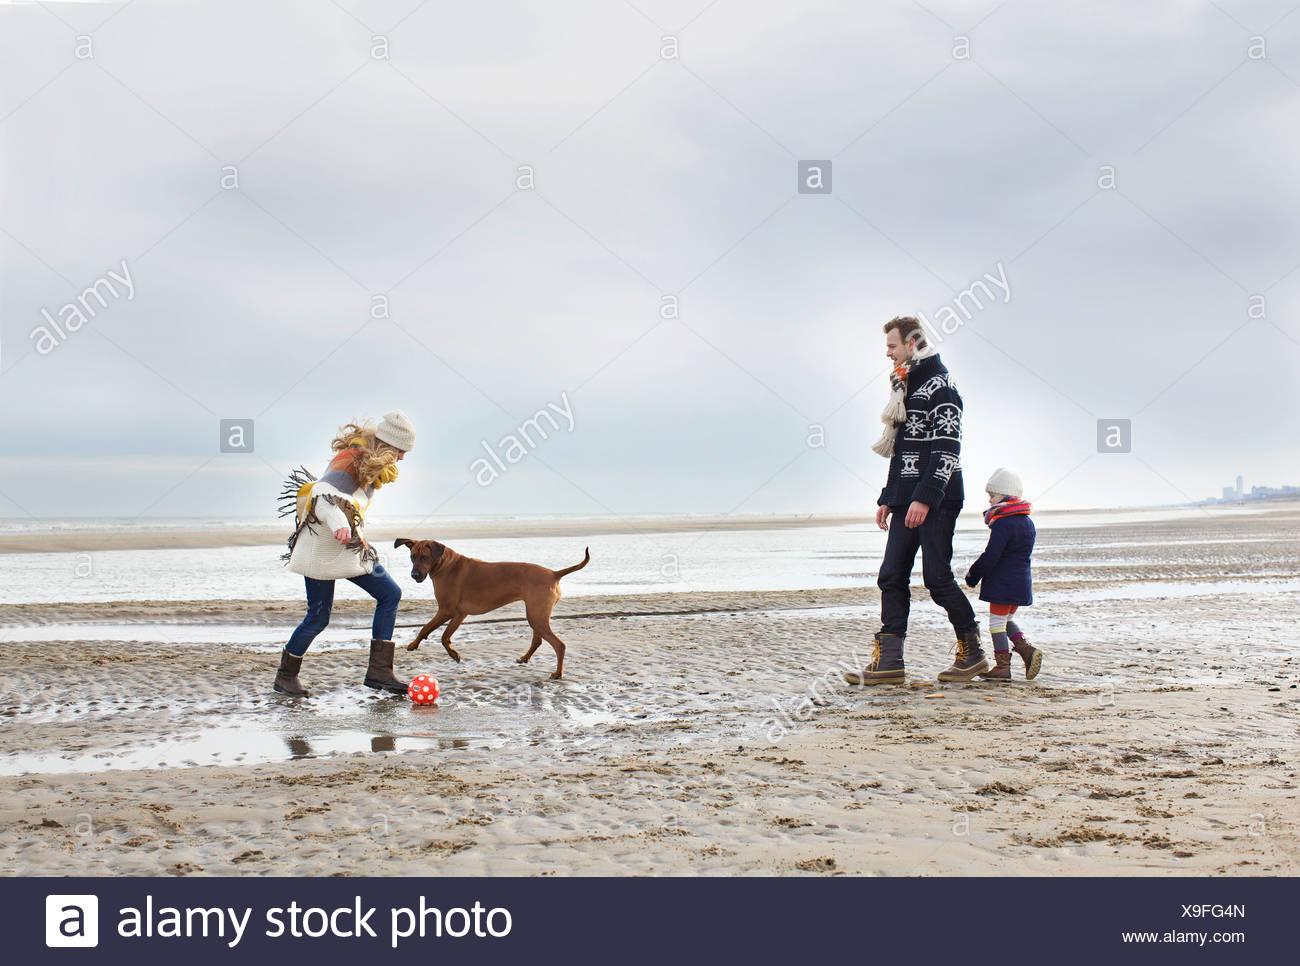 Mid adult parents with daughter and dog playing football on beach, Bloemendaal aan Zee, Netherlands - Stock Image